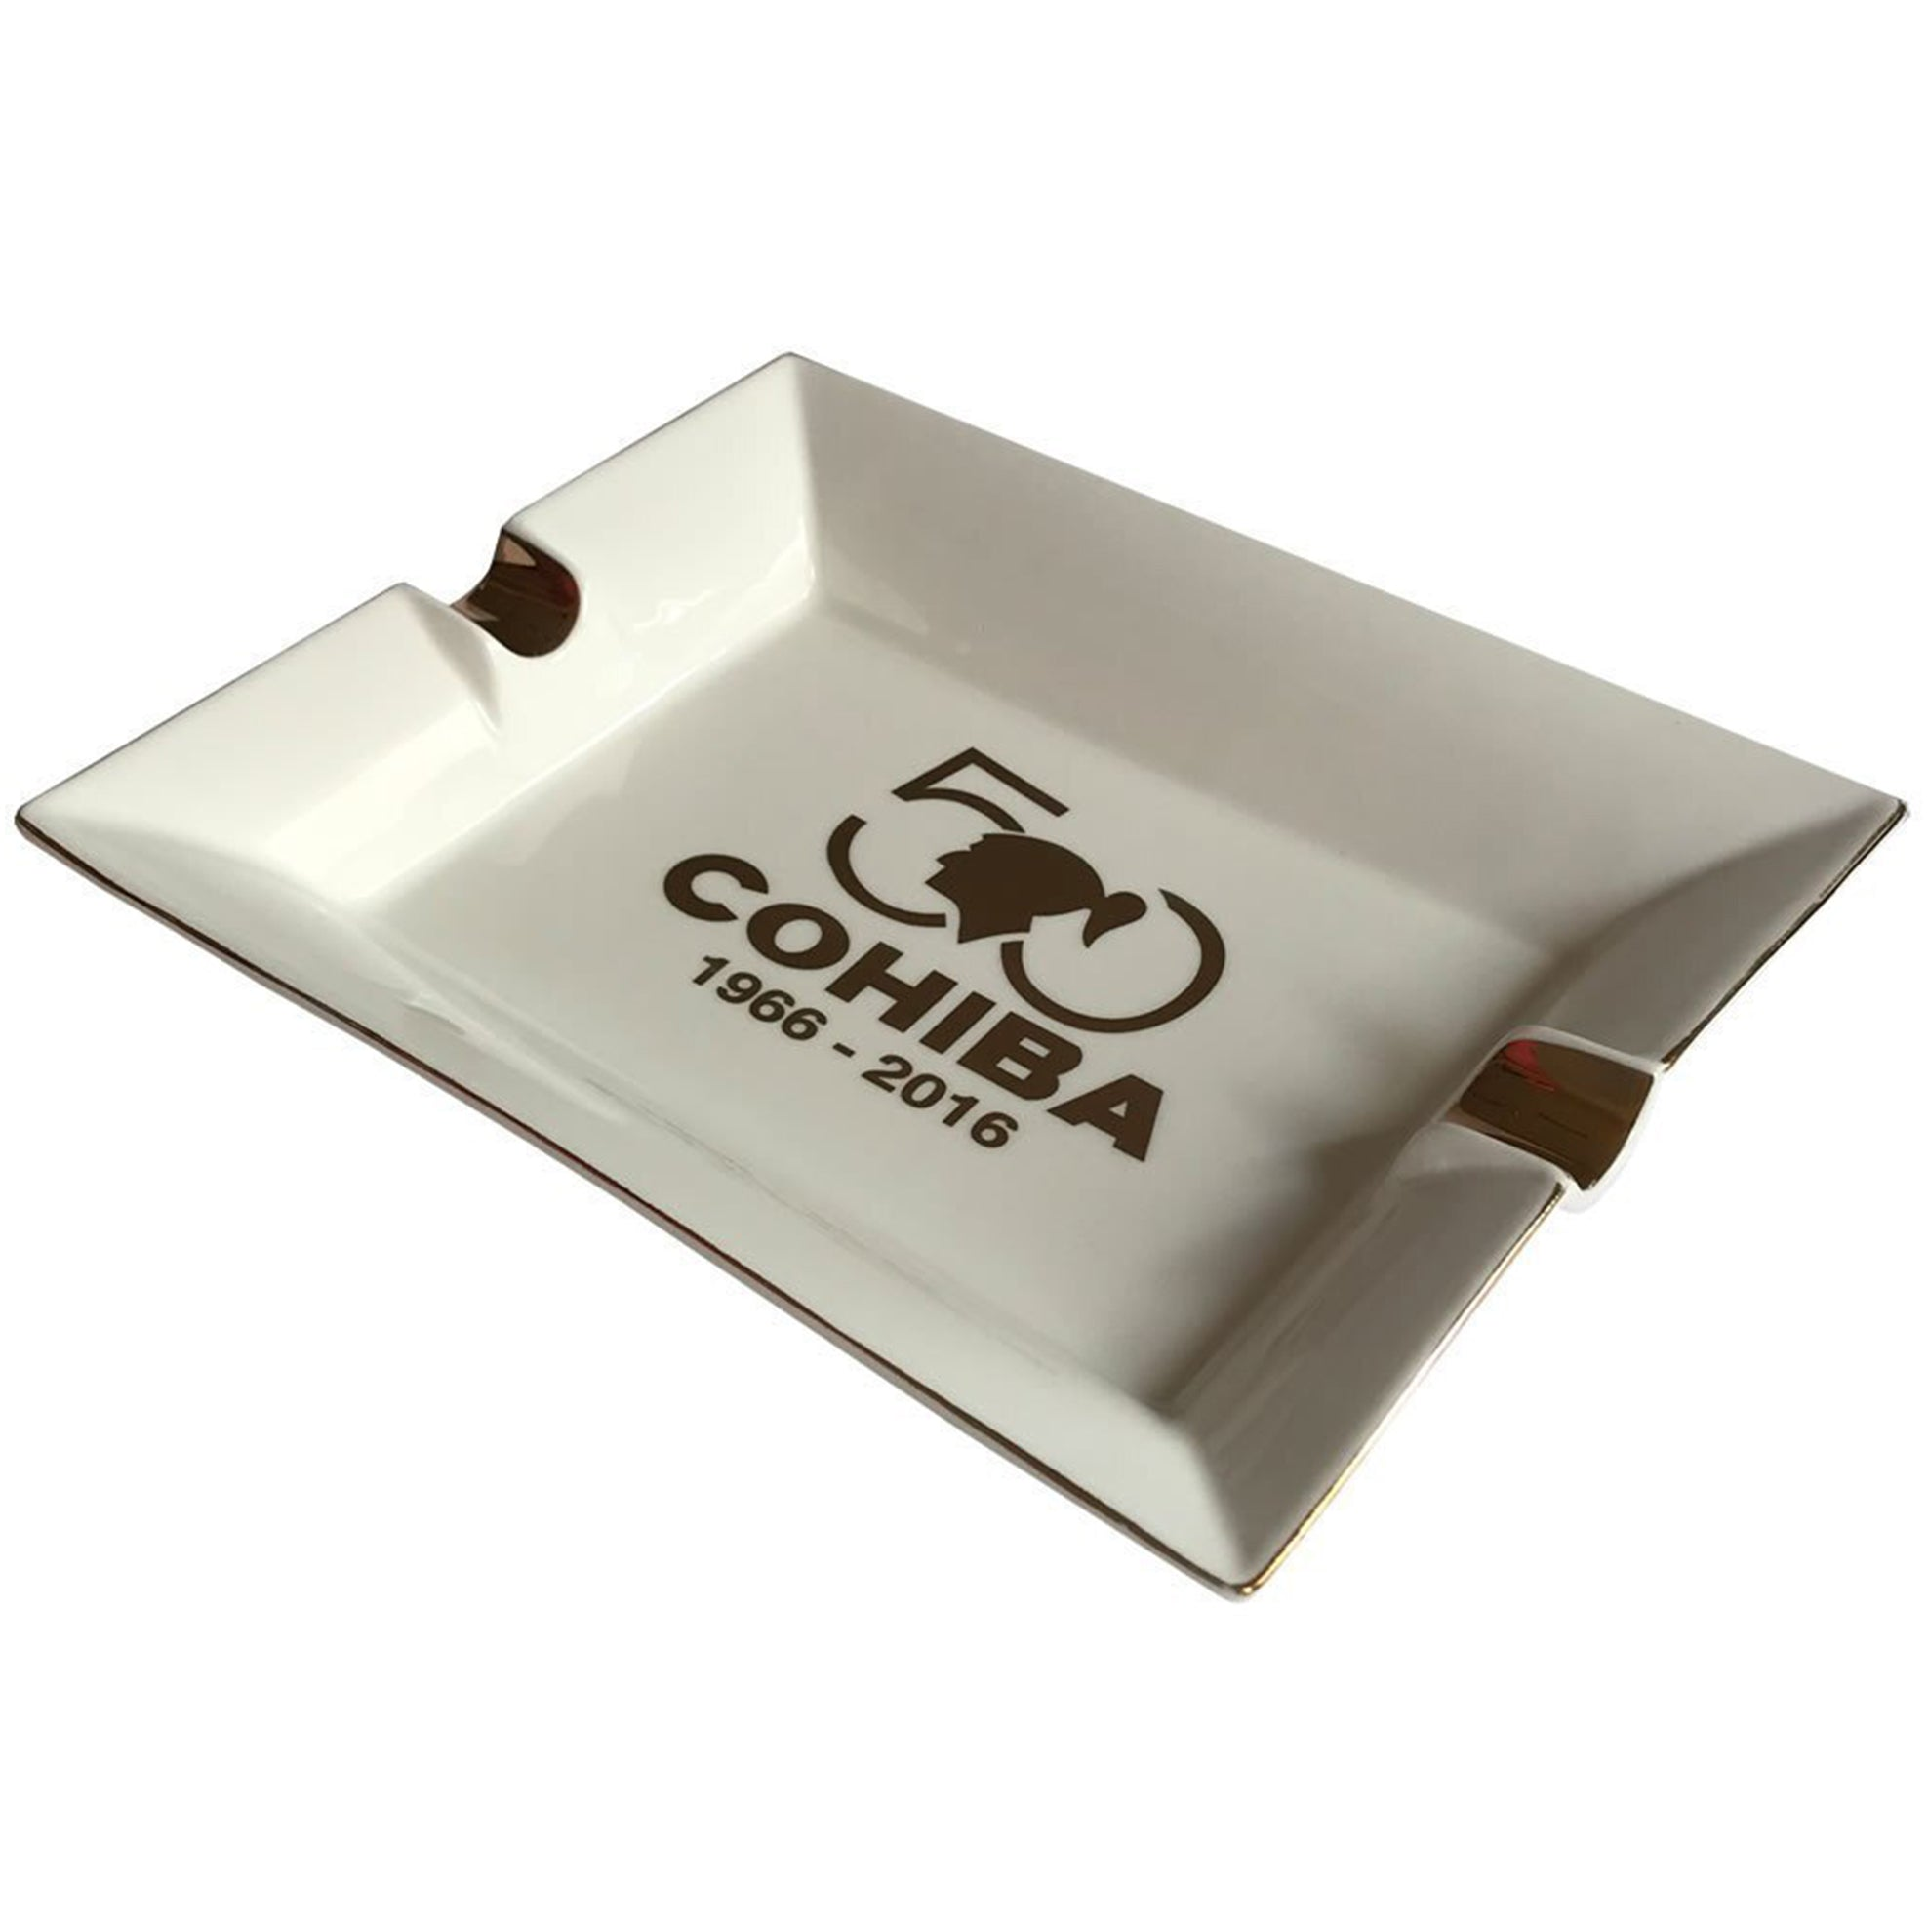 NEW Ashtray EXTRAVAGANZA Off White Porcelain with Two Wide Grooves